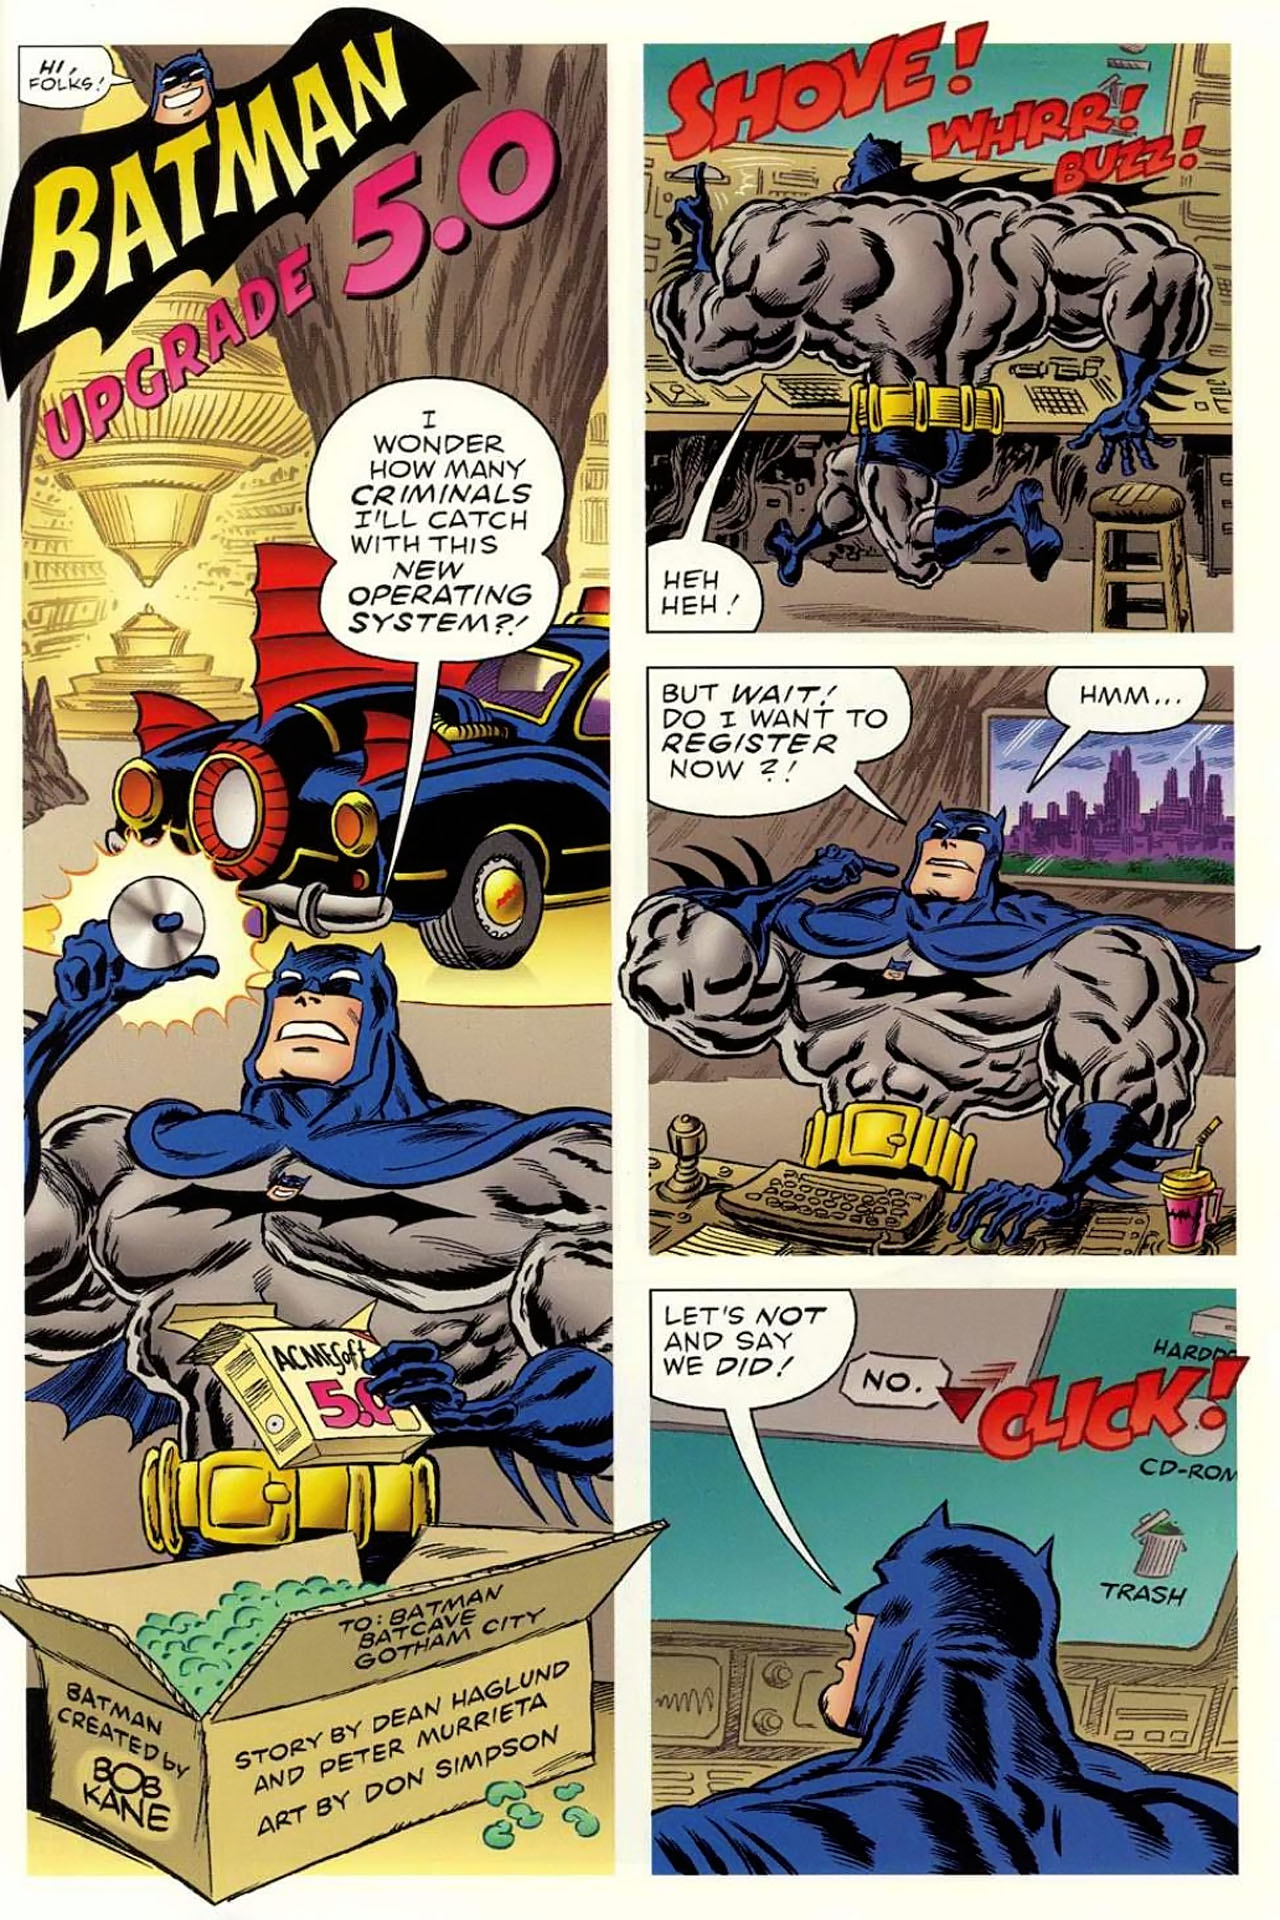 Read online Bizarro World comic -  Issue # TPB - 73